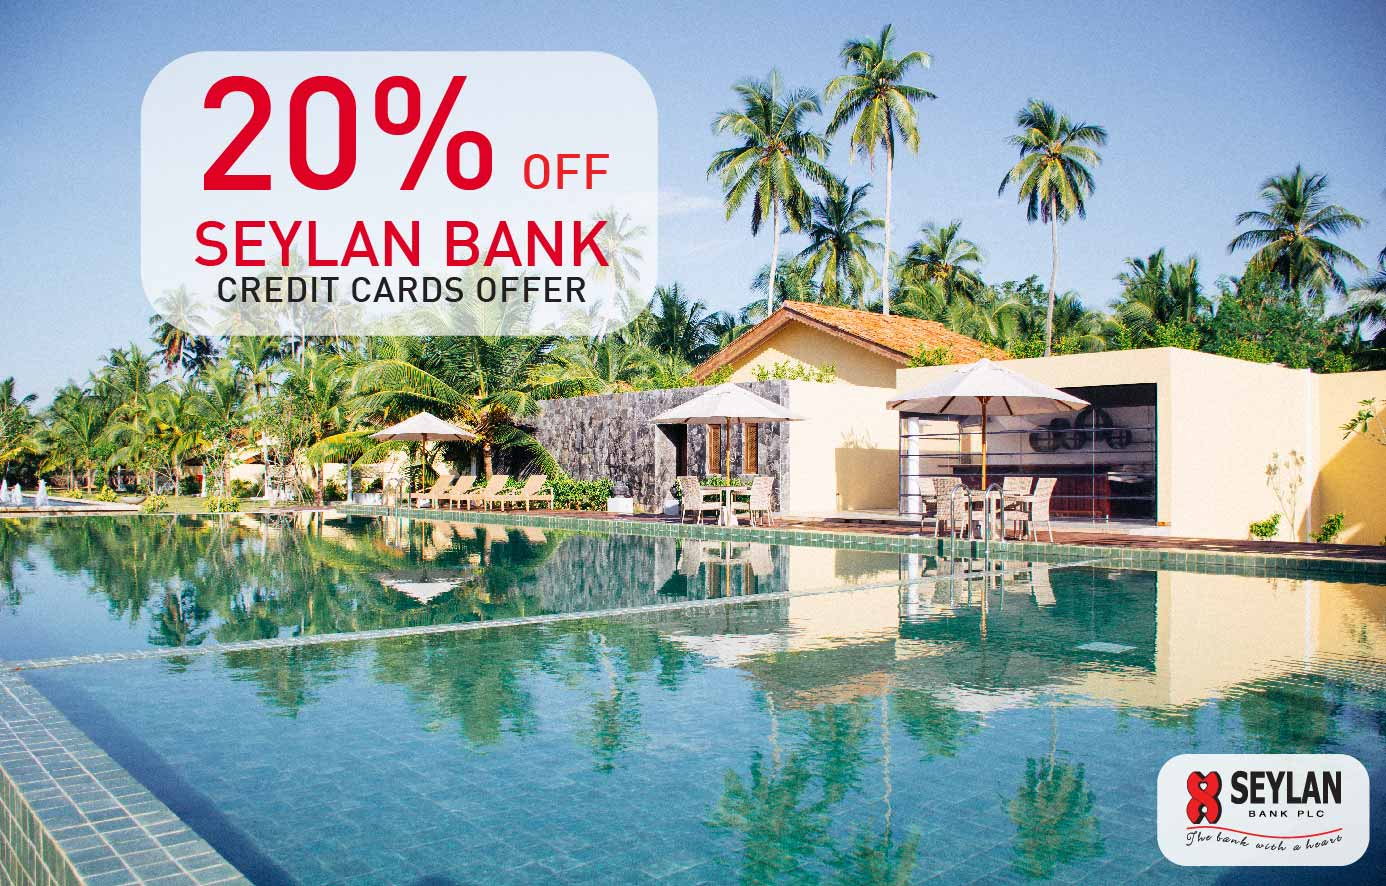 20% OFF OFFER FOR SEYLAN BANK CREDIT CARD HOLDERS